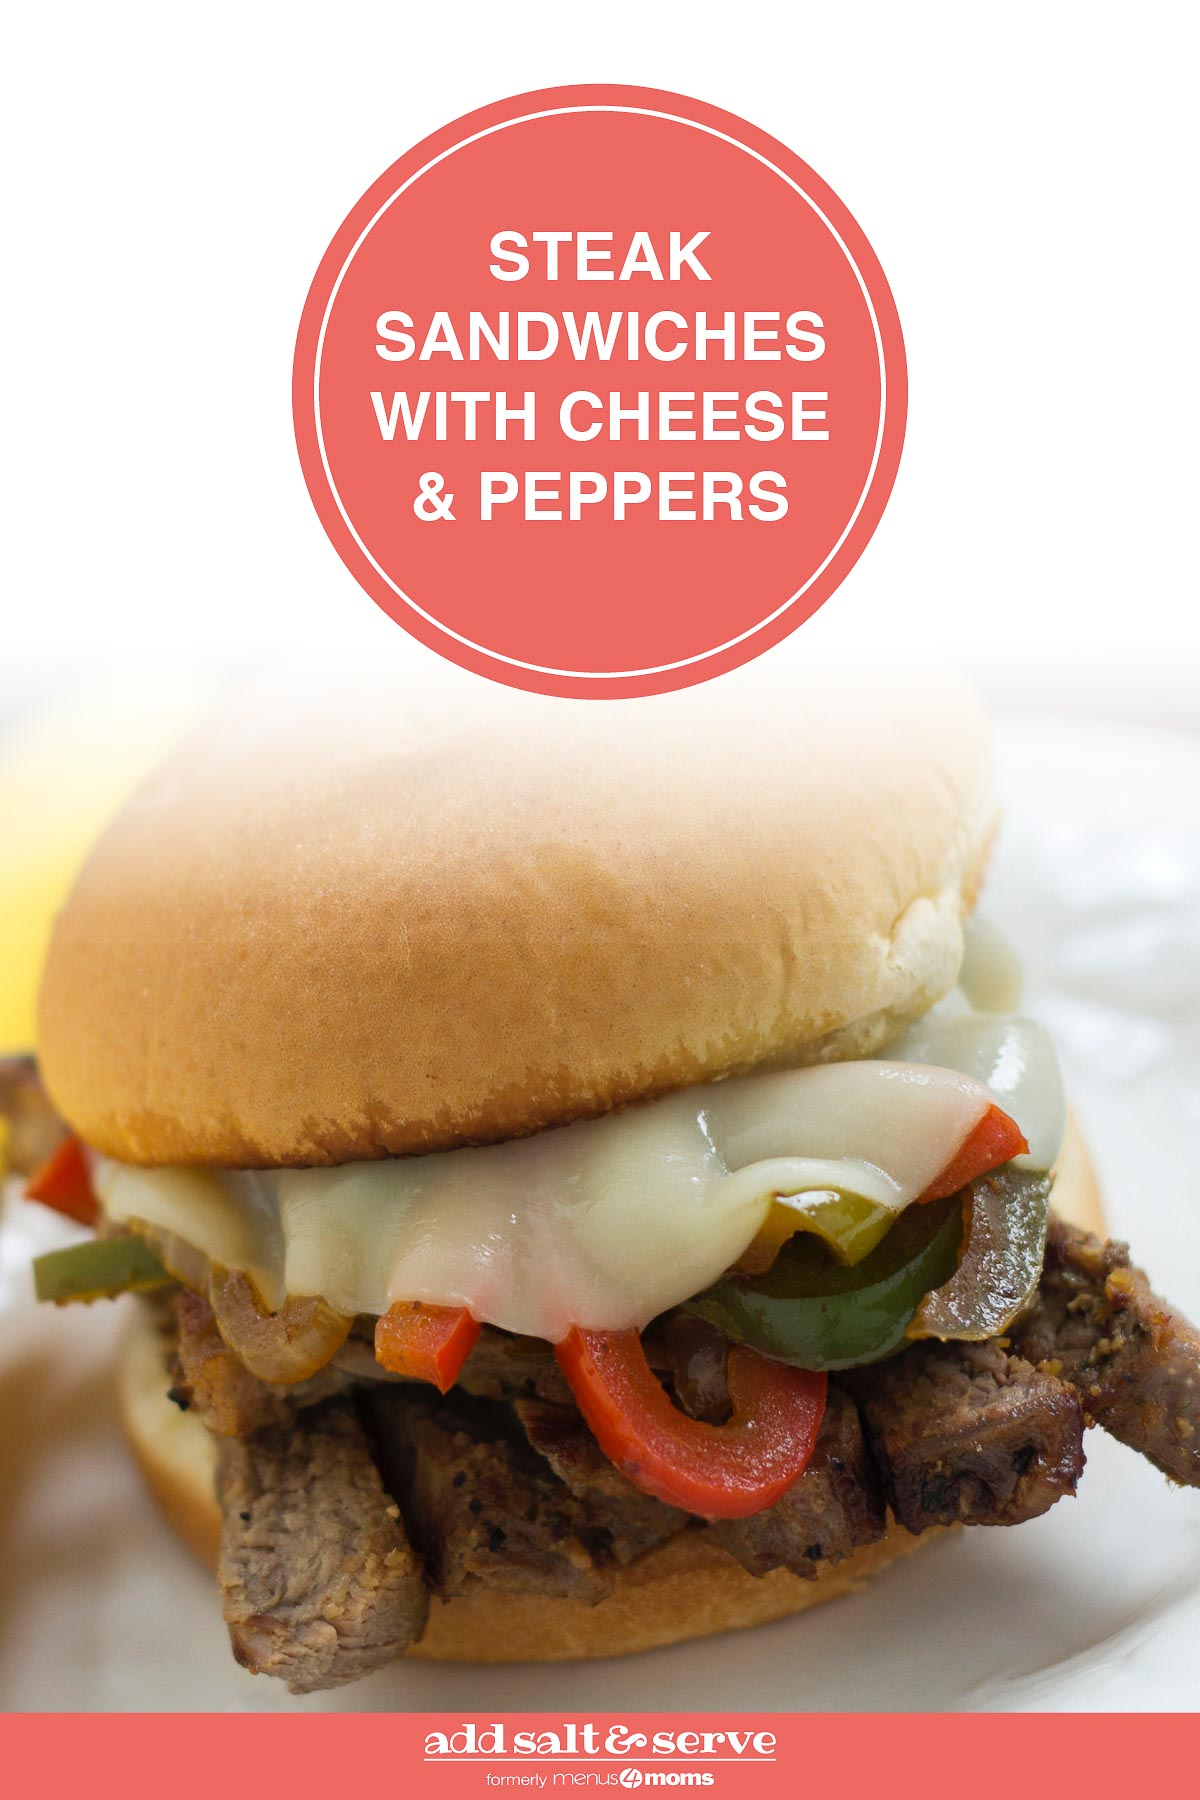 Close up photo of Steak Sandwich with Cheese and Peppers on a white plate; text Steak Sandwiches with Cheese & Peppers - Add Salt & Serve logo